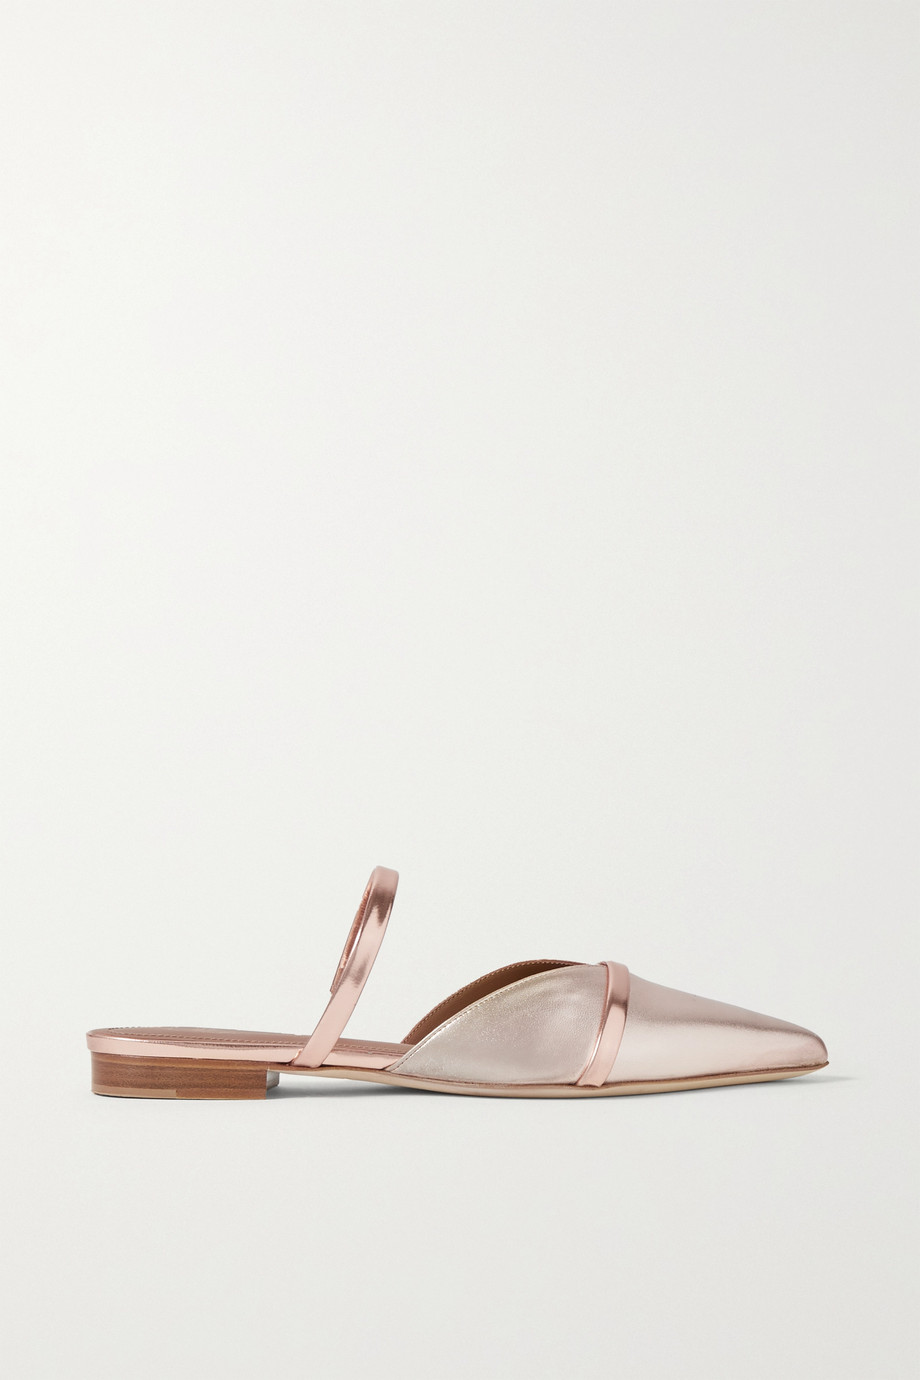 MALONE SOULIERS Frankie metallic leather point-toe flats